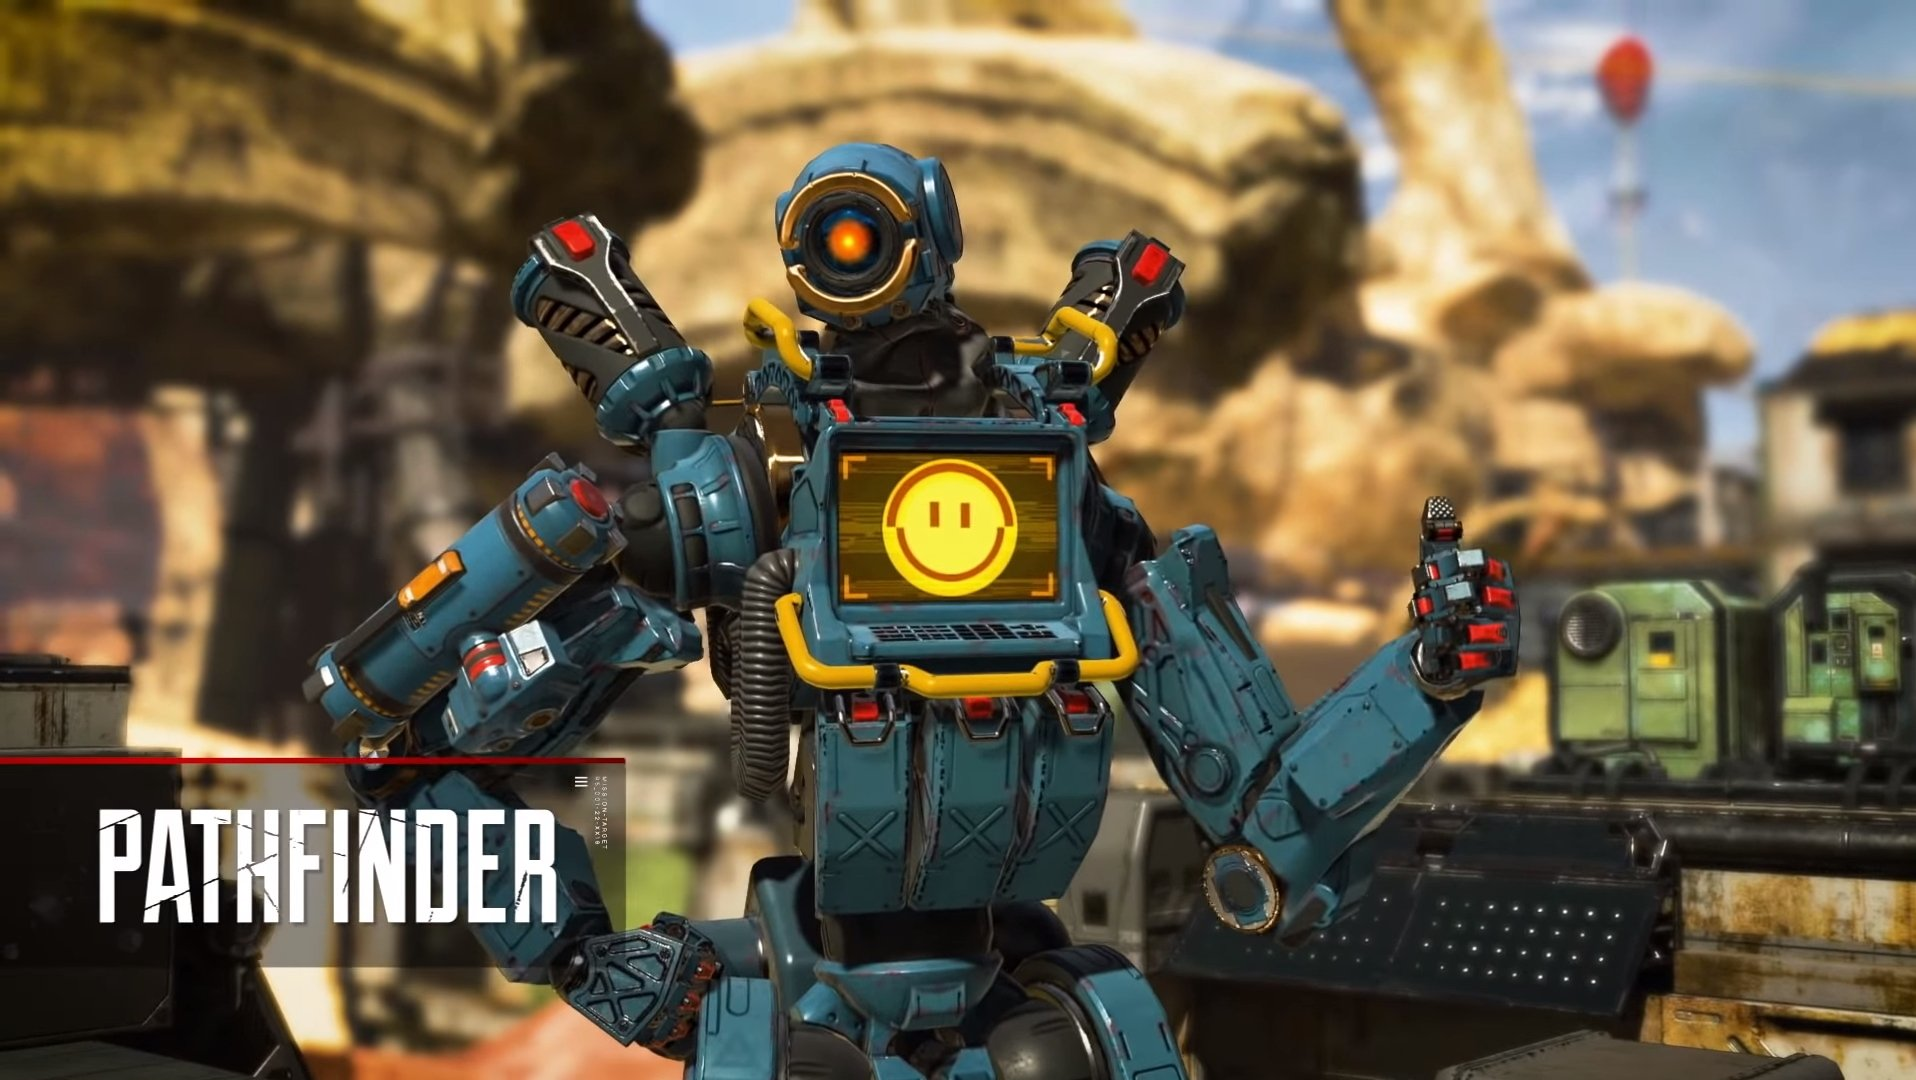 How to play Pathfinder - Apex Legends Character Guide